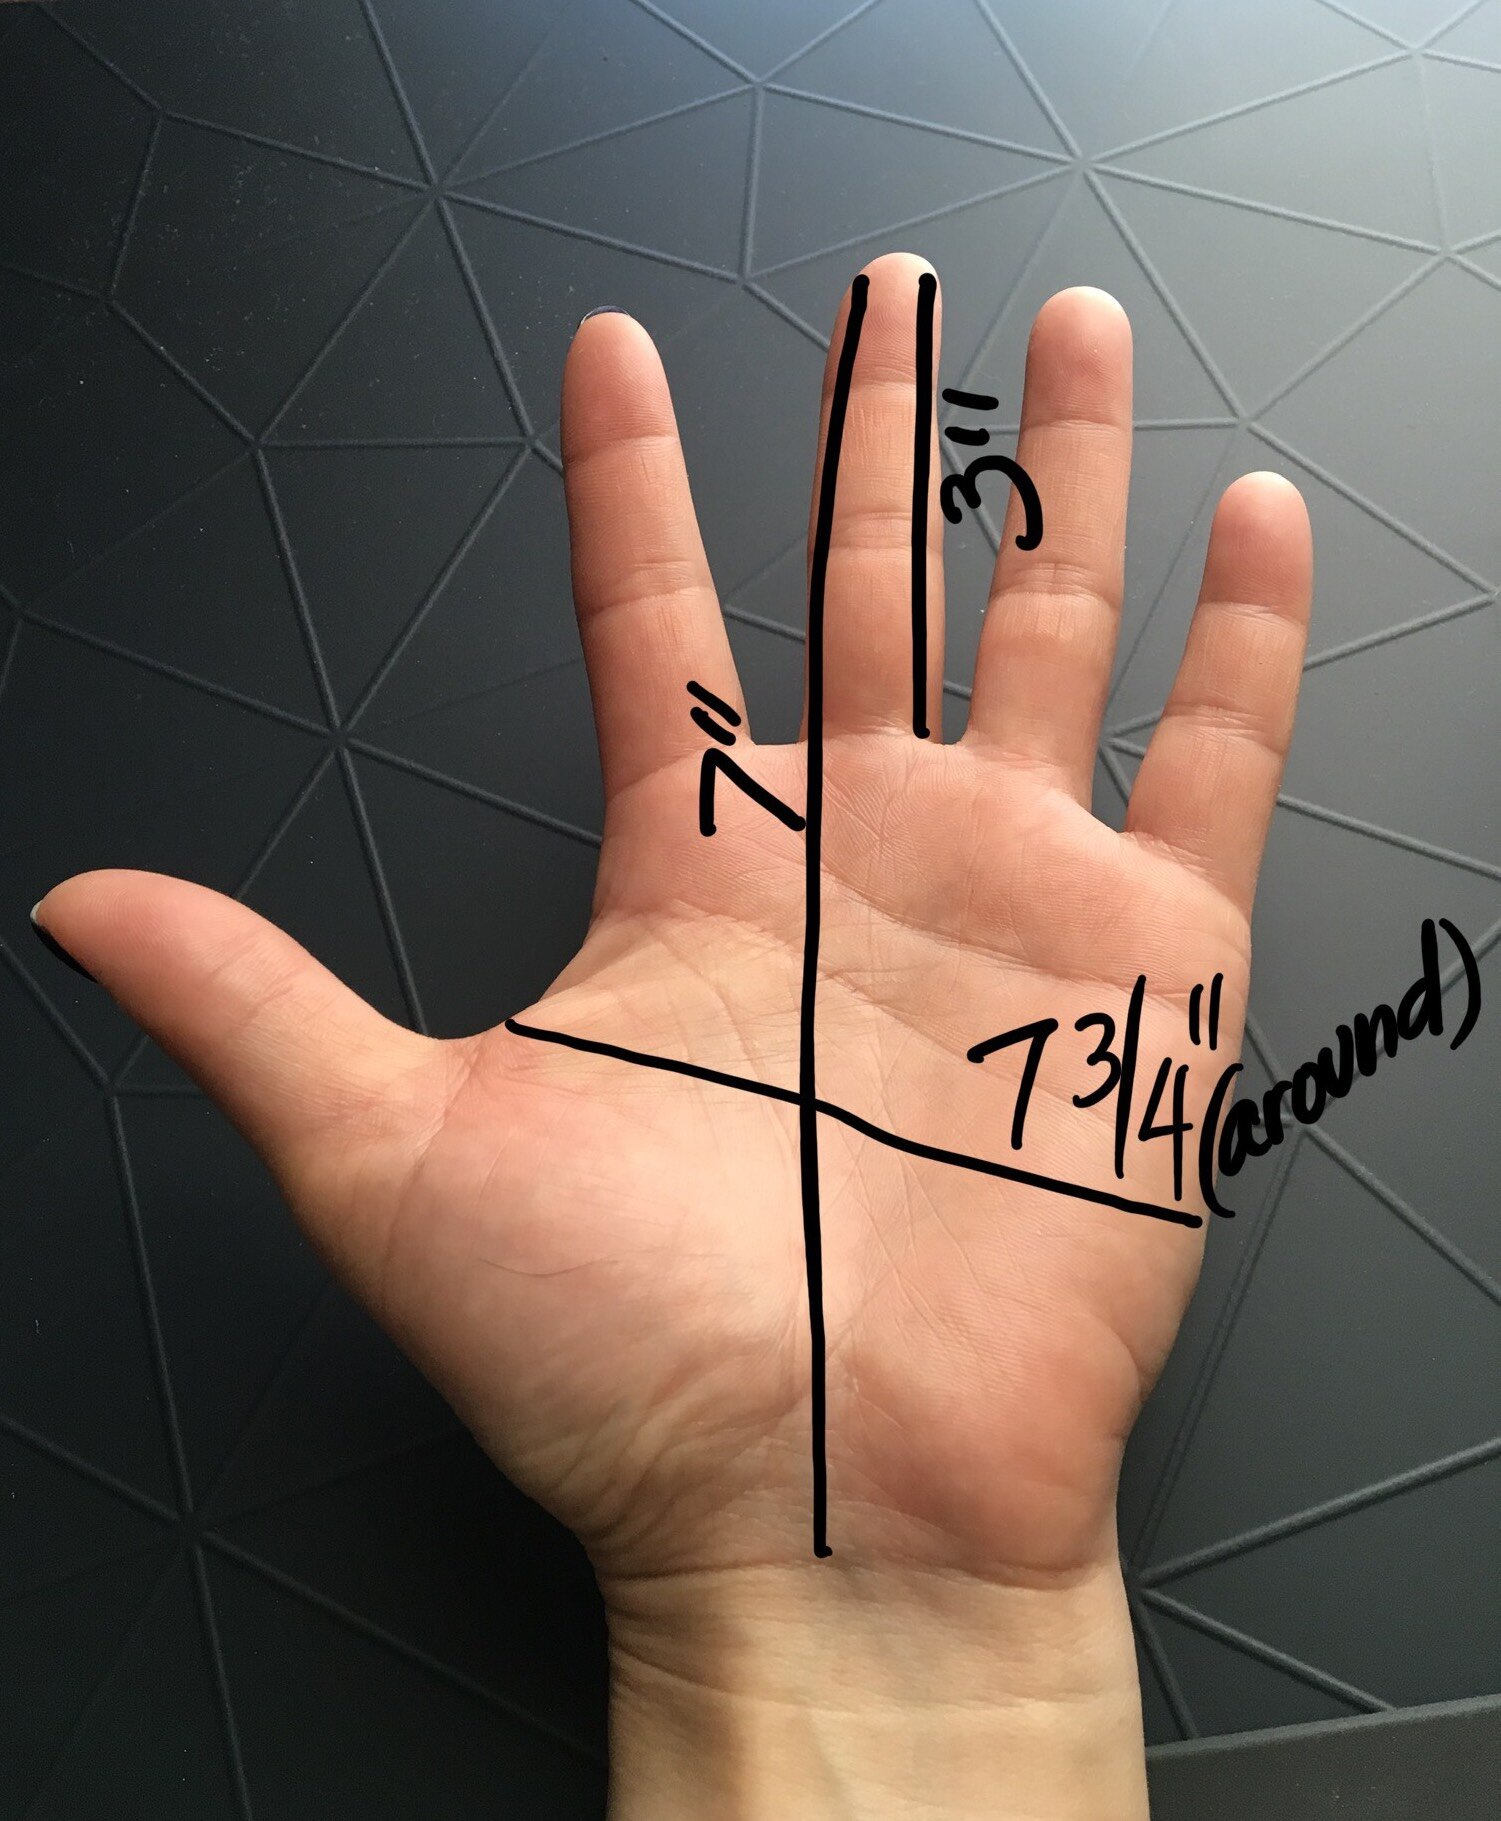 hand measurements.jpg